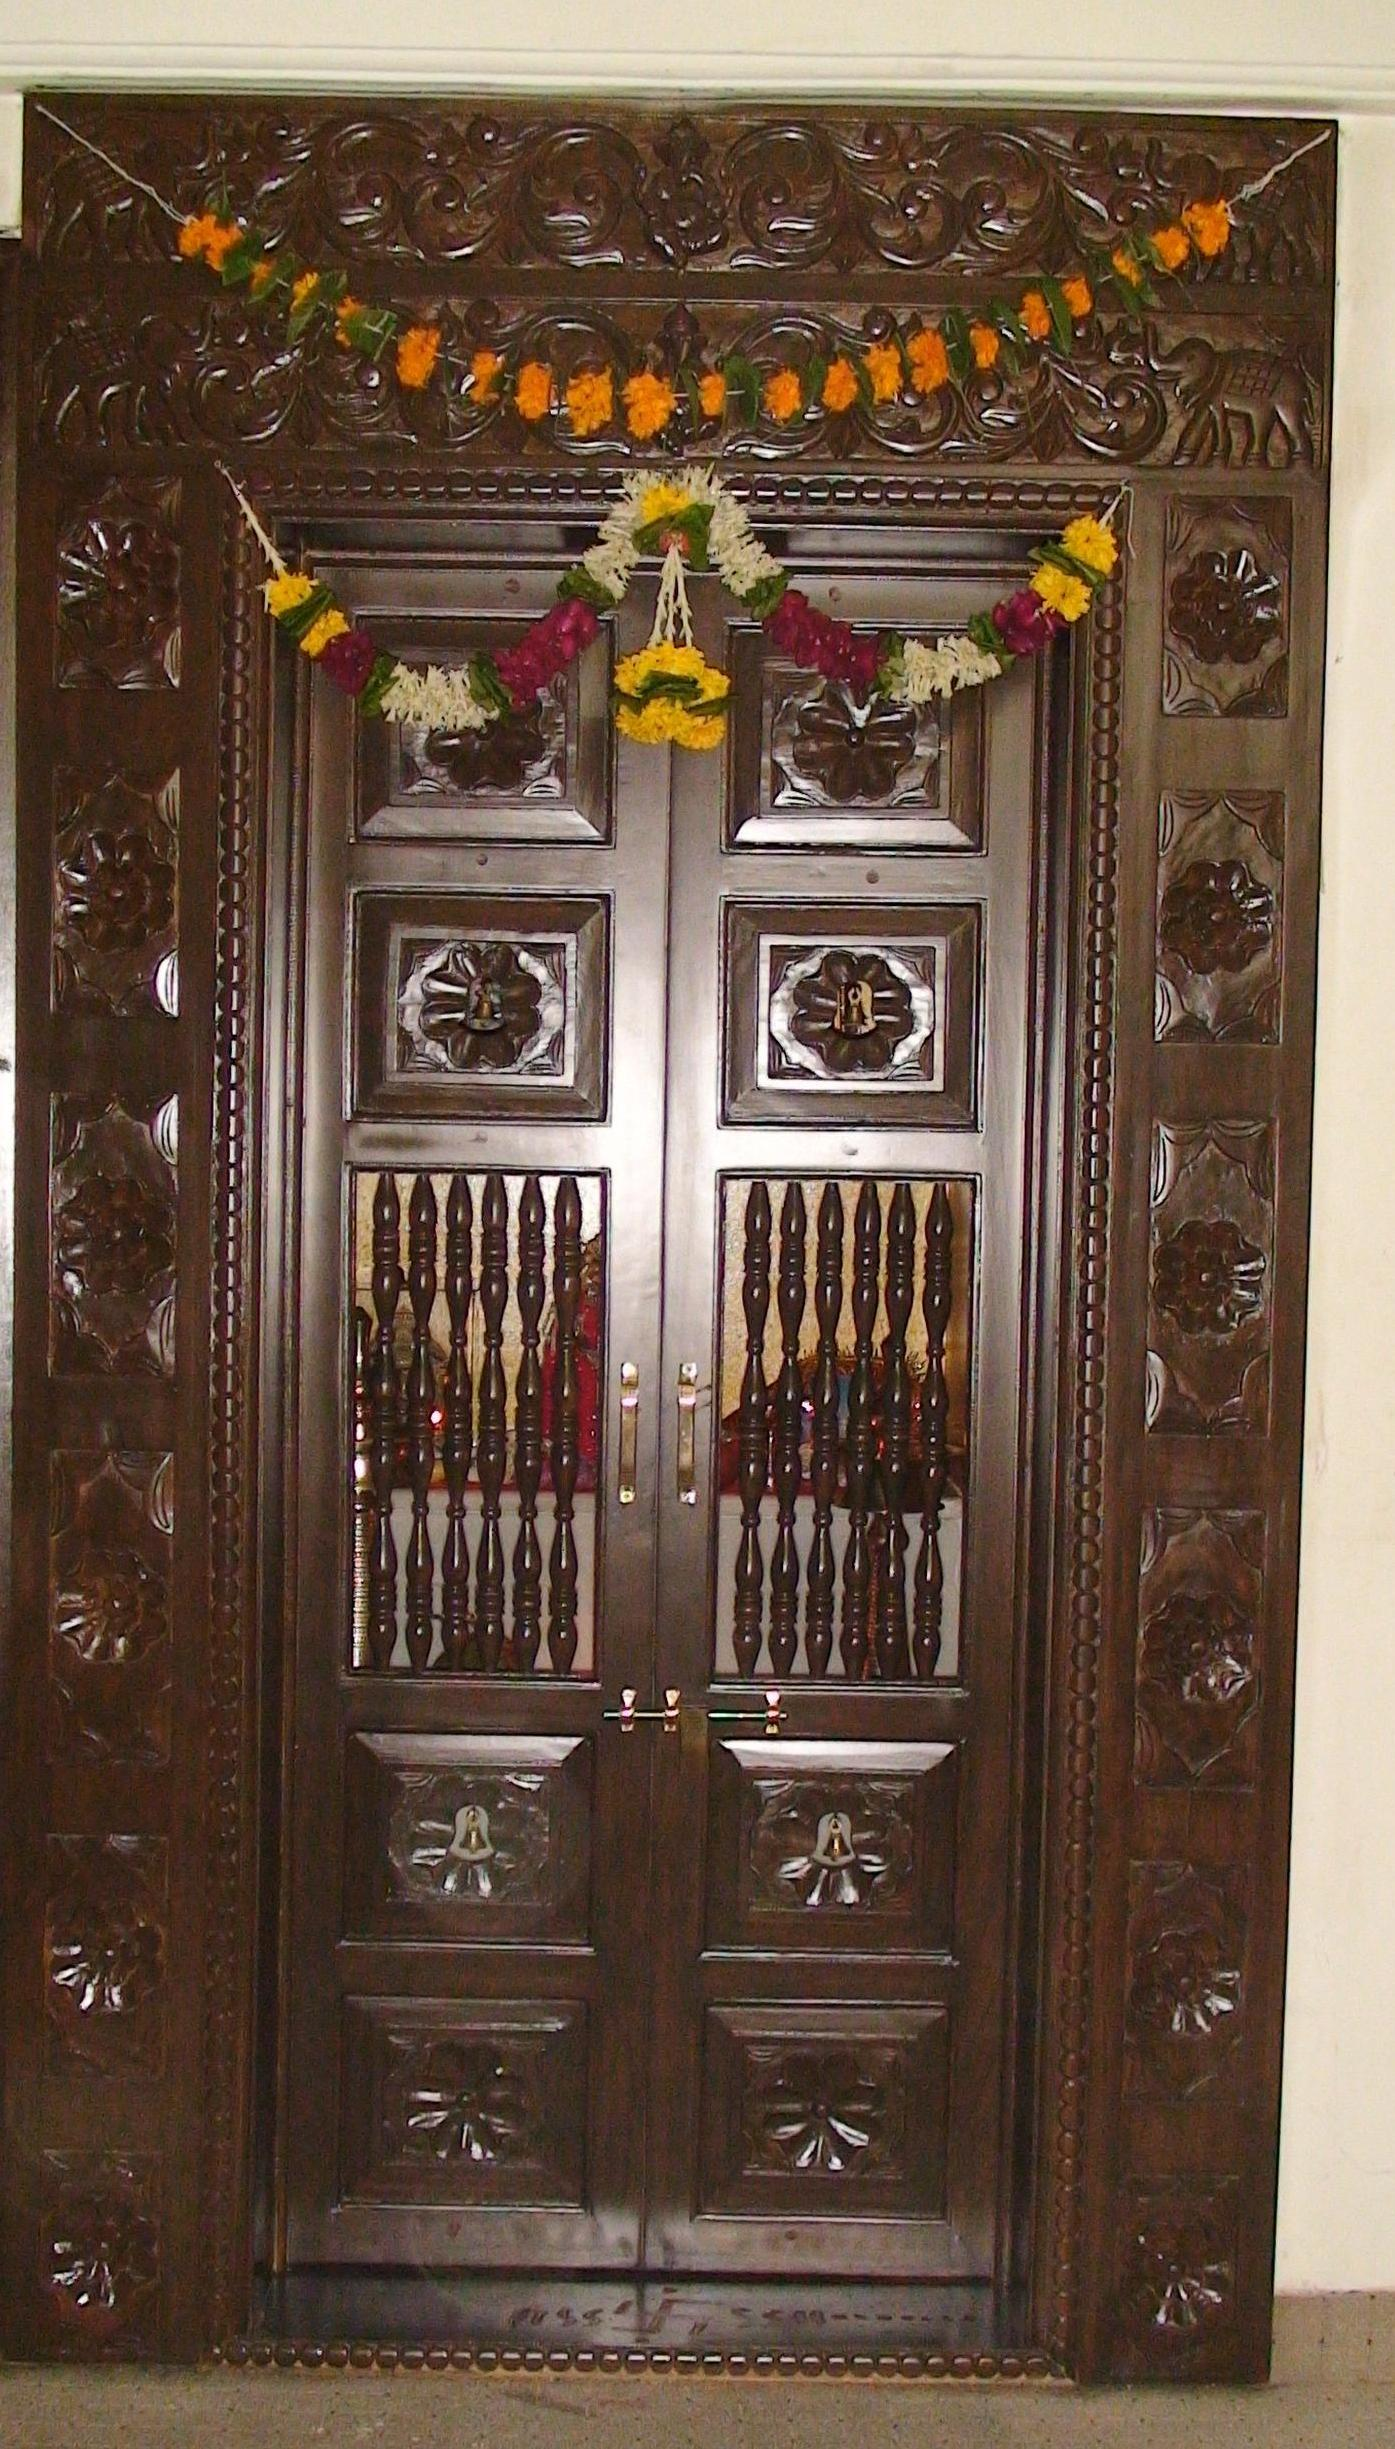 Temple Door - Teak wood - carved with antique ironmongery